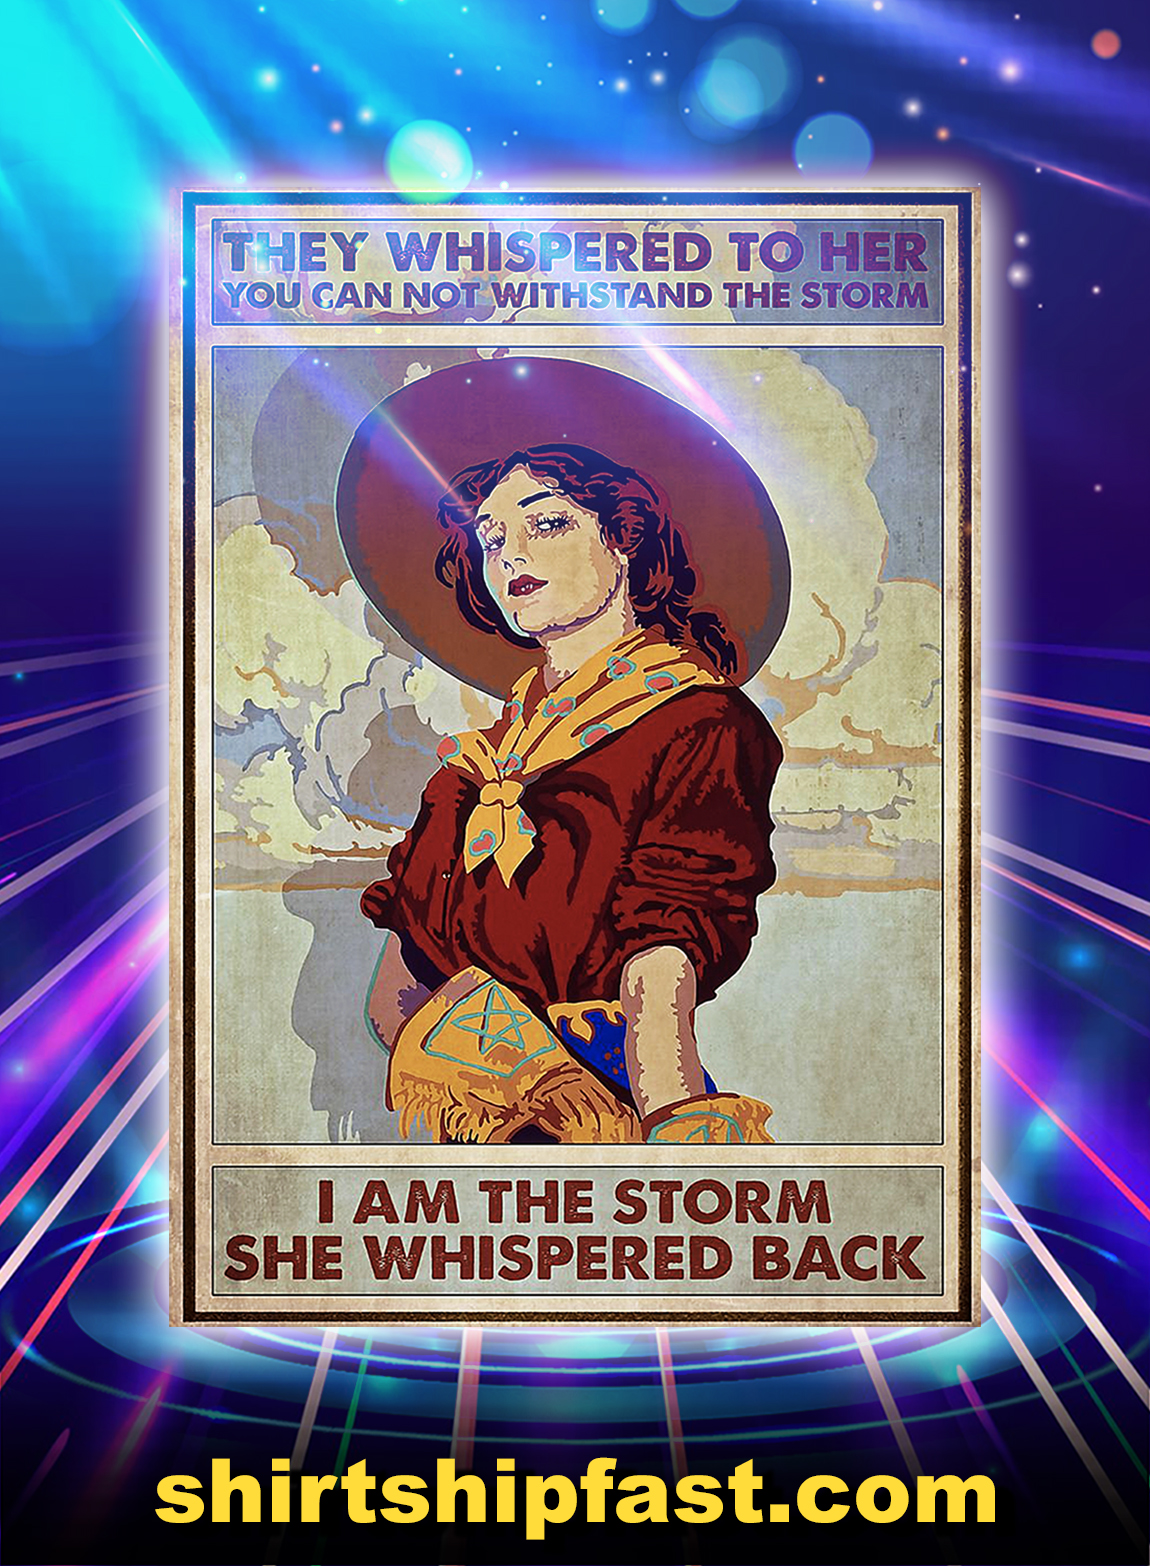 Cowgirl they whispered to her you can not withstand the storm poster - A3